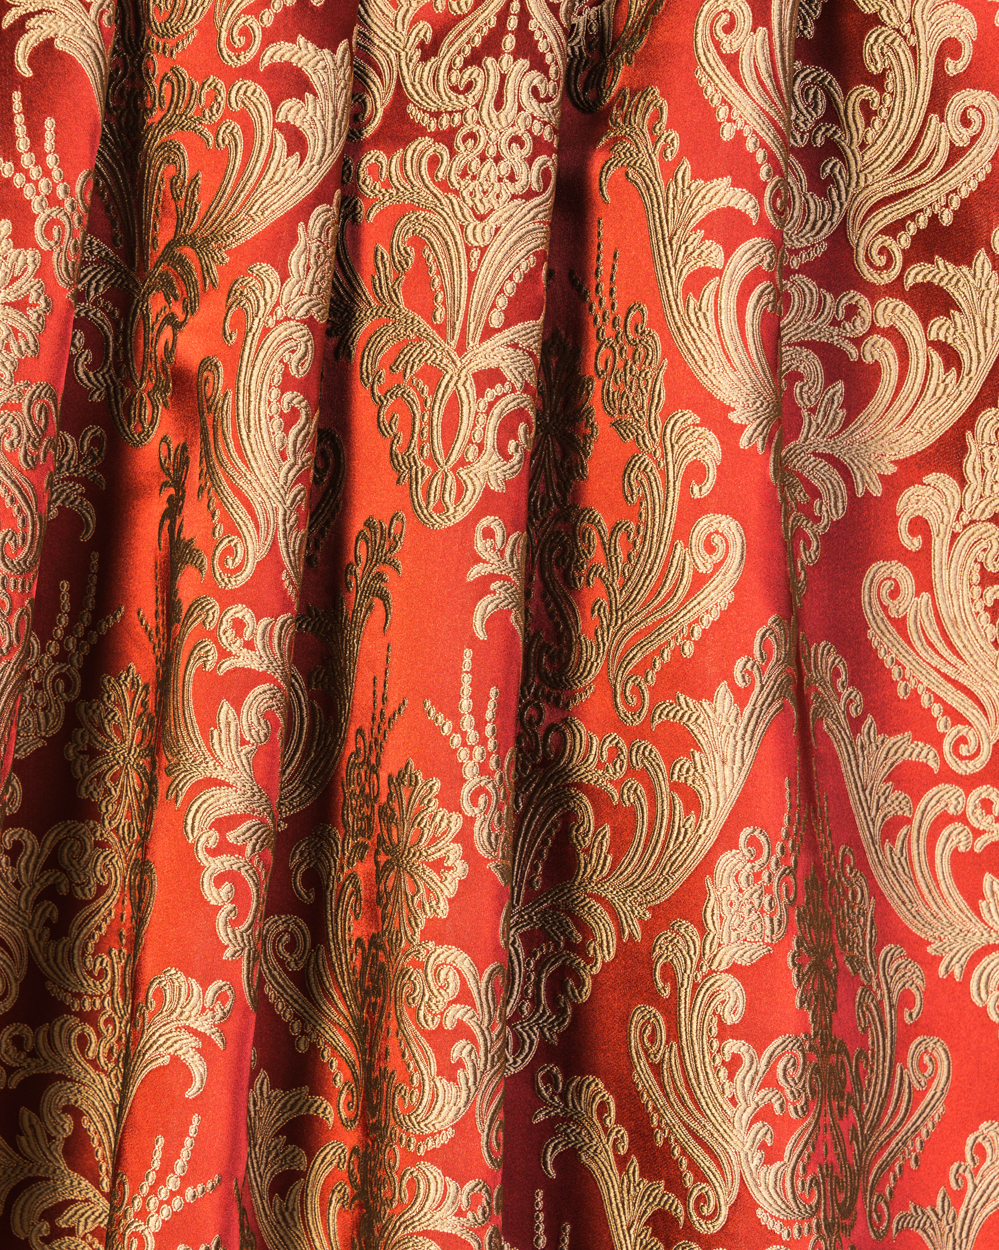 ... : Home Collections Royal Collection Brocade Curtain fabric red, gold